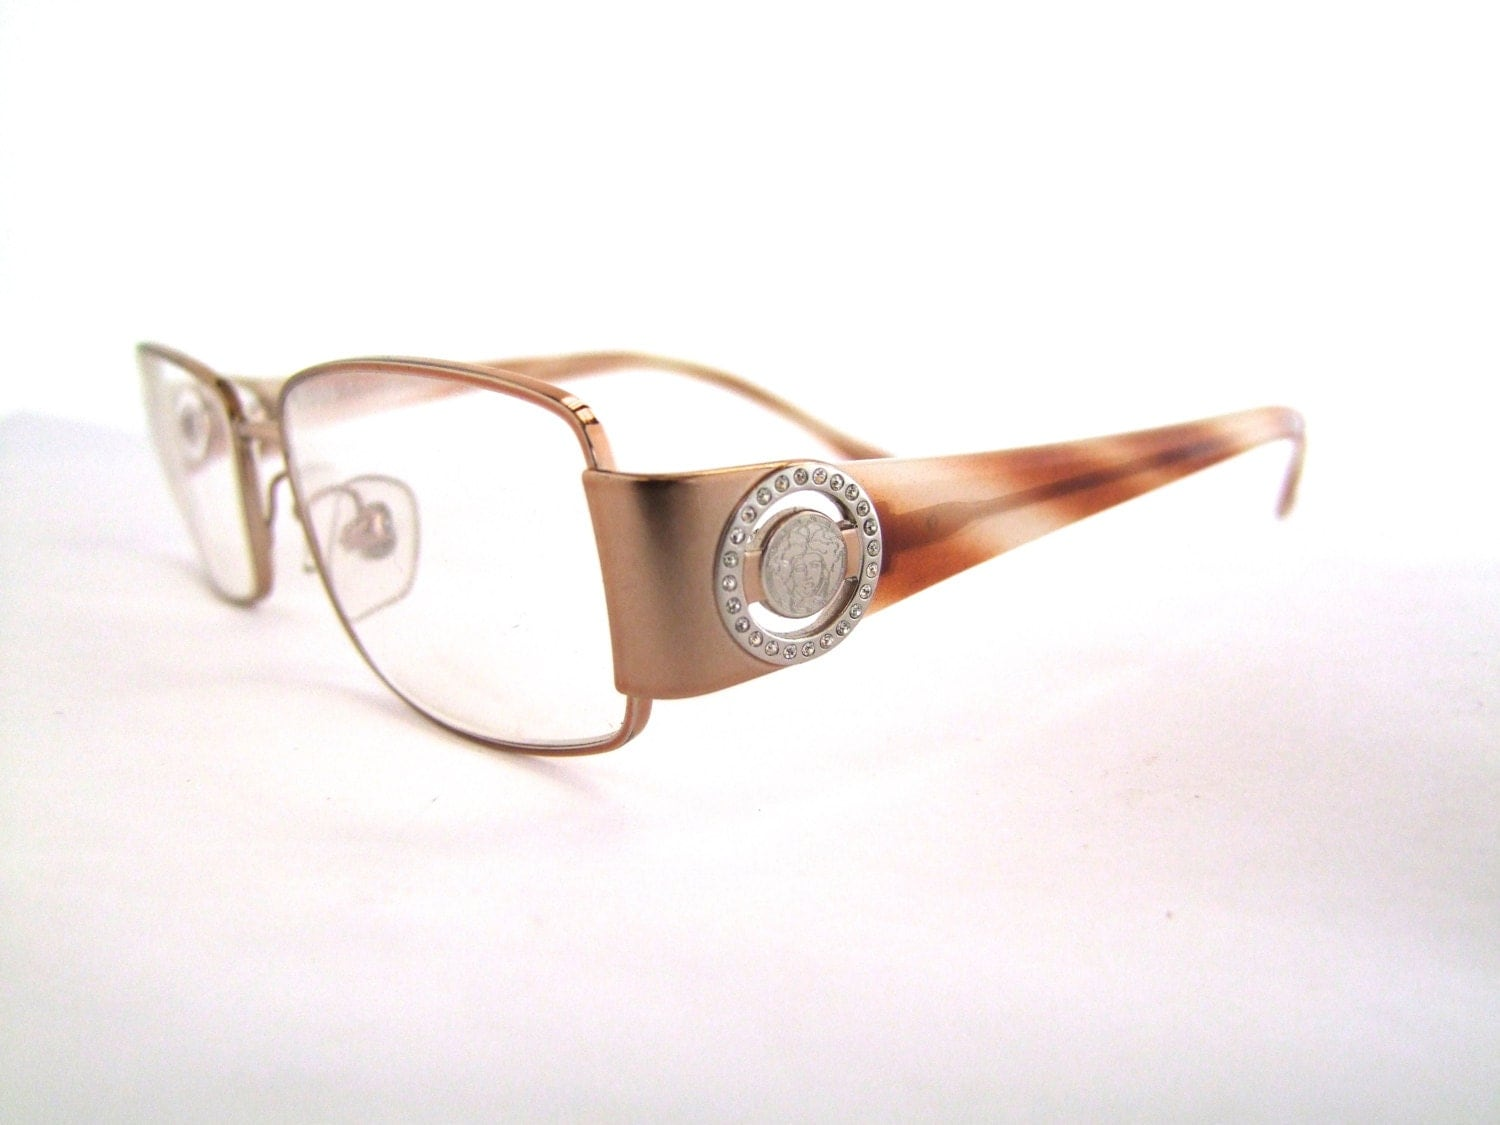 Designer Eyeglass Frames Bling : Designer eyeglass frames with bling